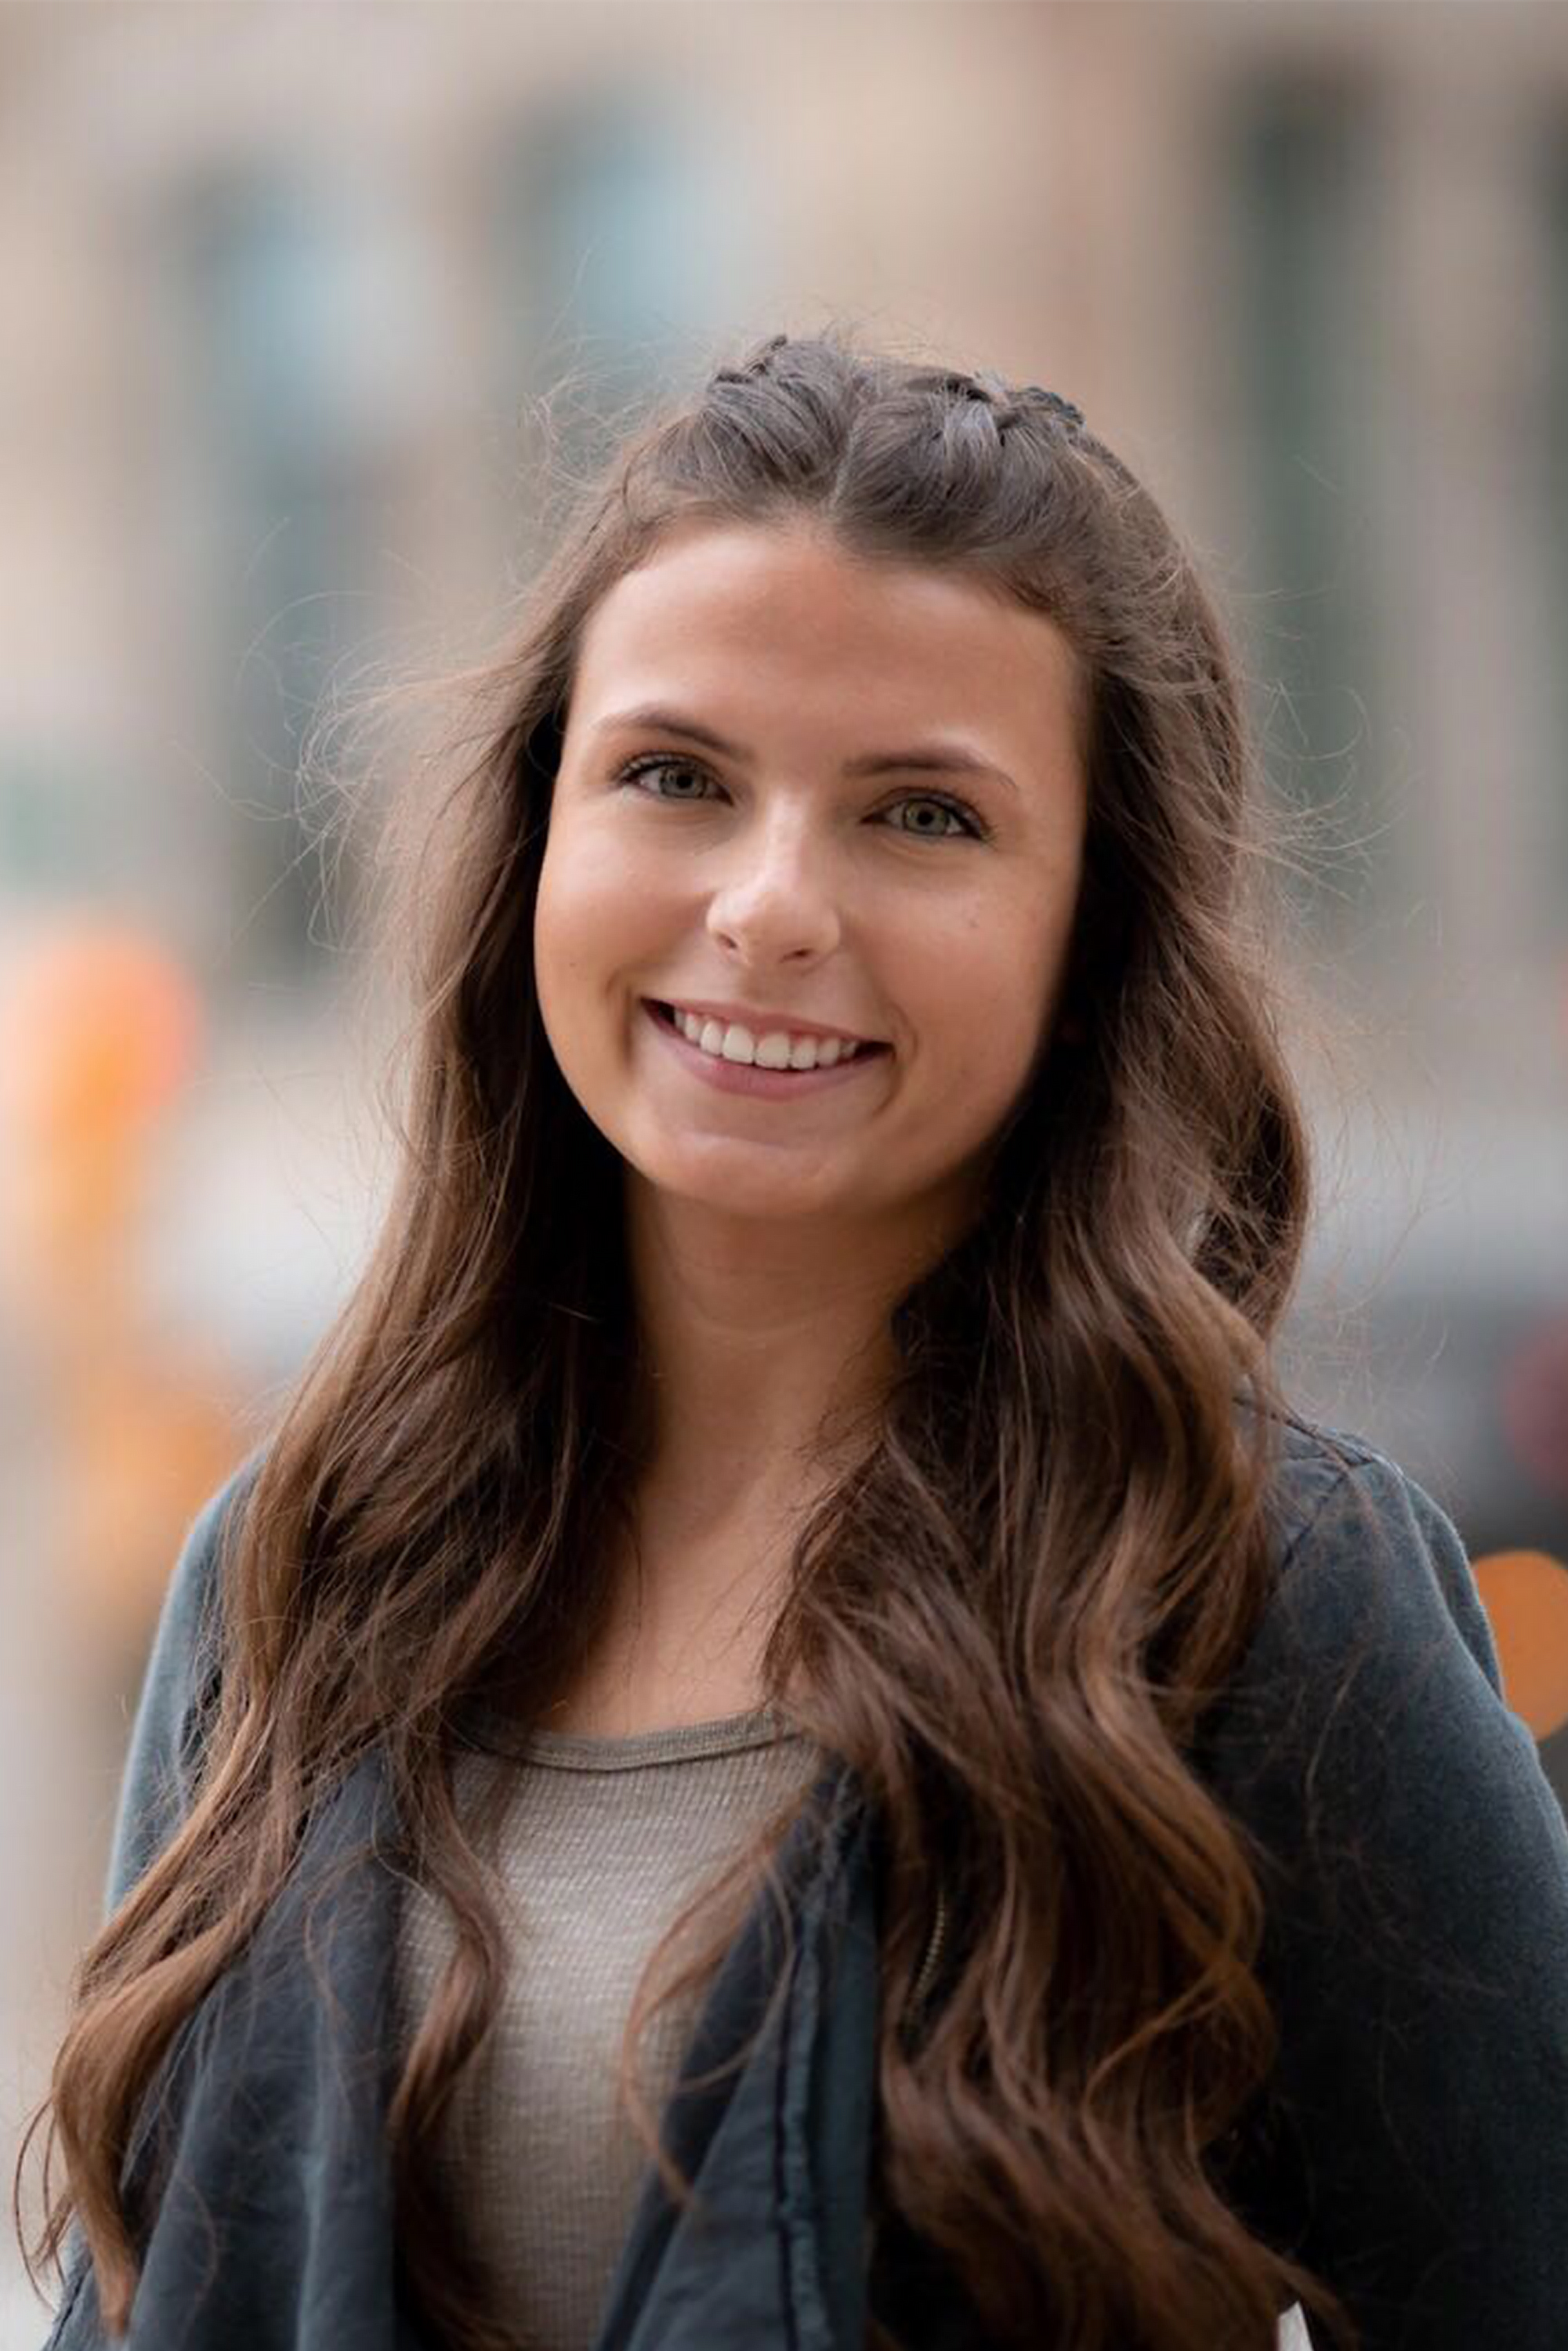 Kiely Page    Marketing Assistant   Kiely is a content creator and student at Concordia University - Wisconsin. She works closely with CEO & COO to schedule meetings, research leads, scout event locations, and assists in the growth & strategy.